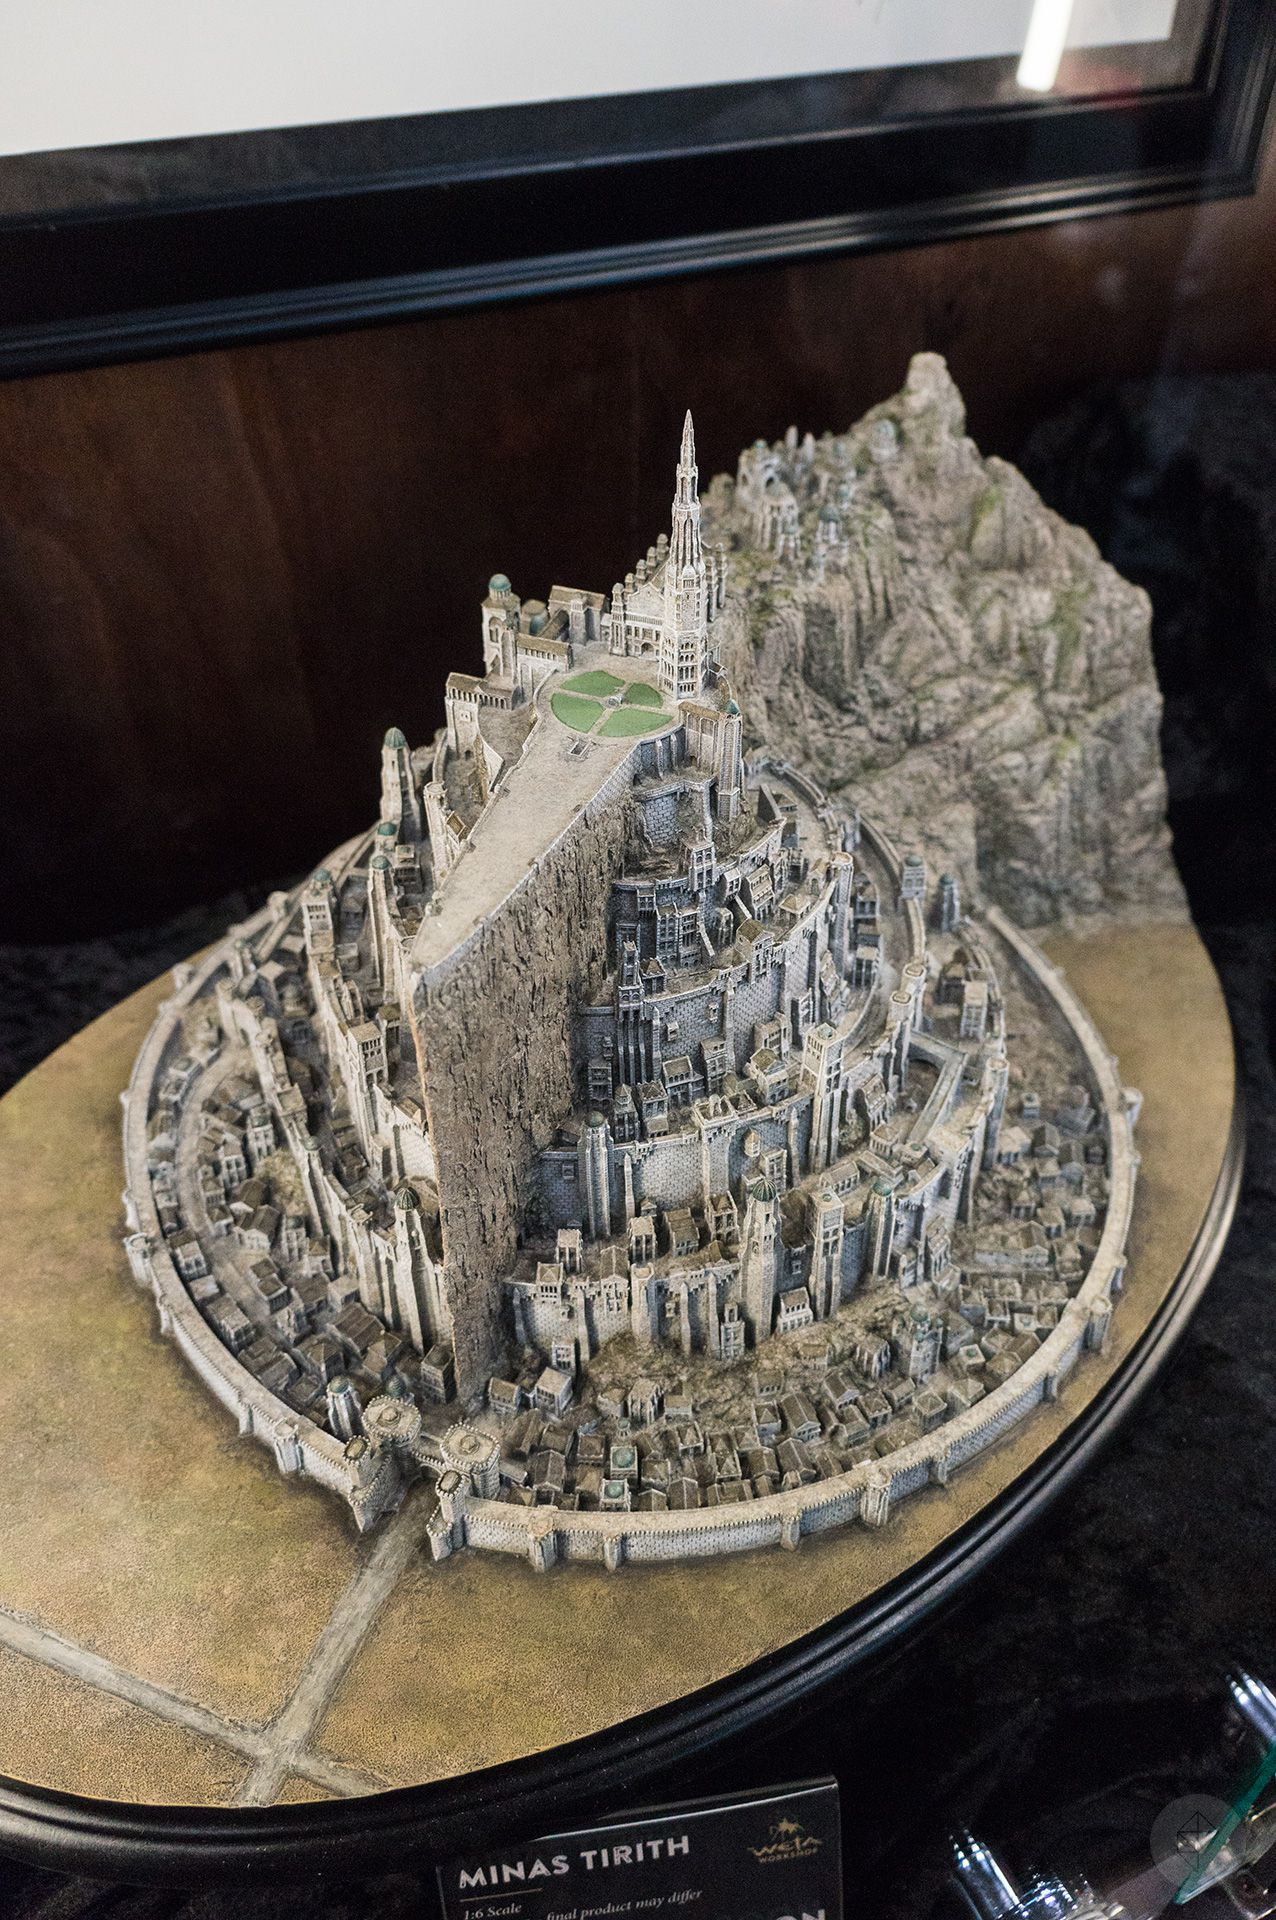 Lotr Models Images - Reverse Search